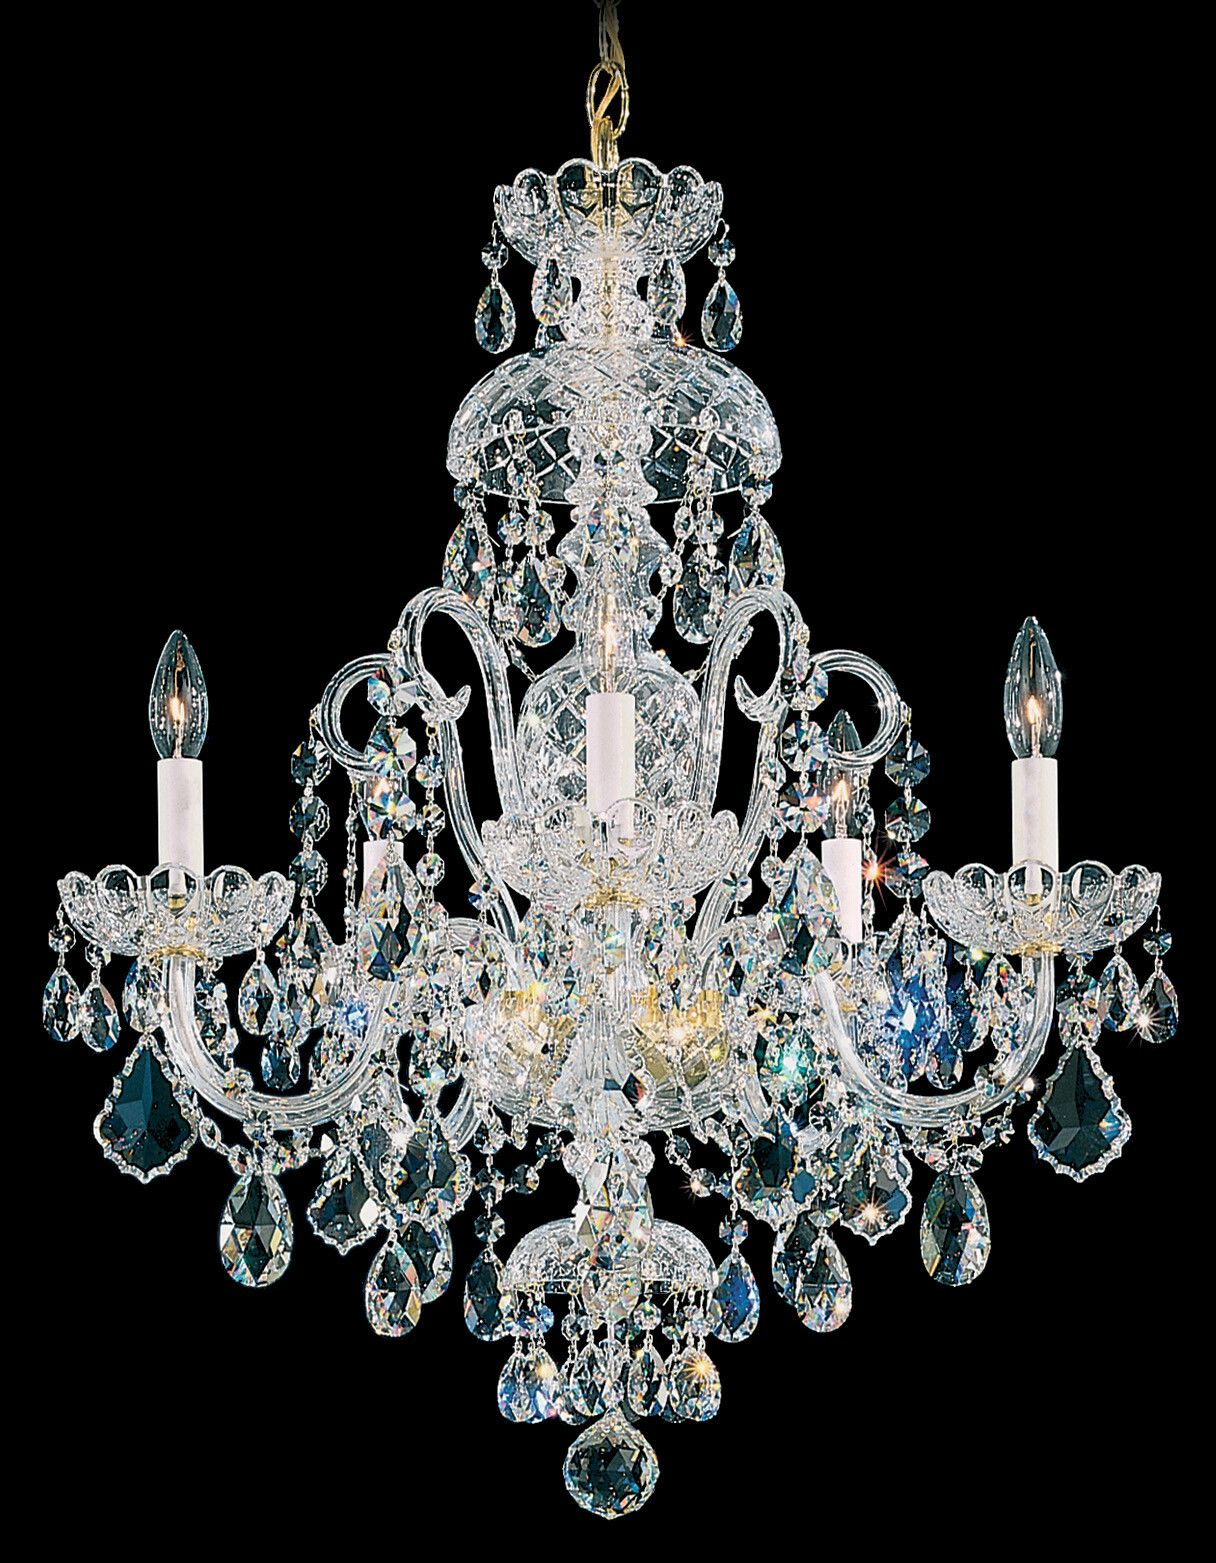 This Signature Classic By Arnold Schonbek Is An All Crystal